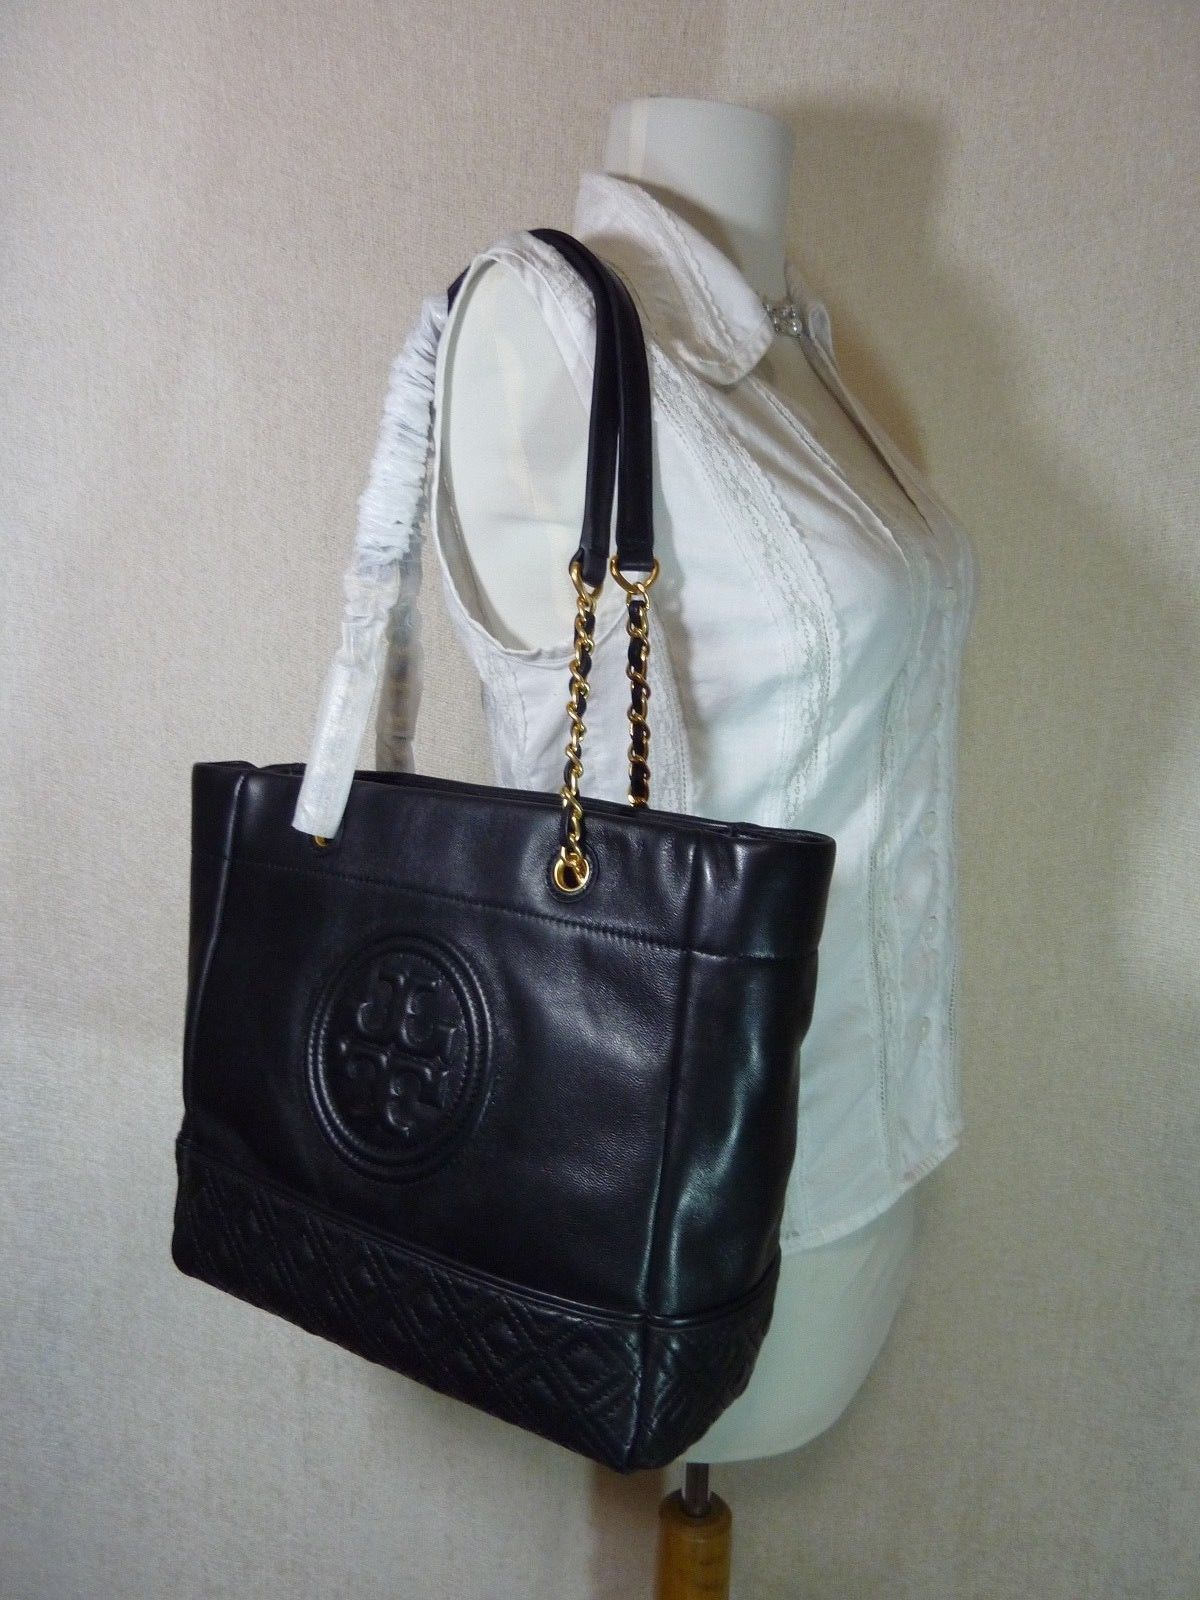 NWT Tory Burch Black Leather Fleming Medium Tote $558